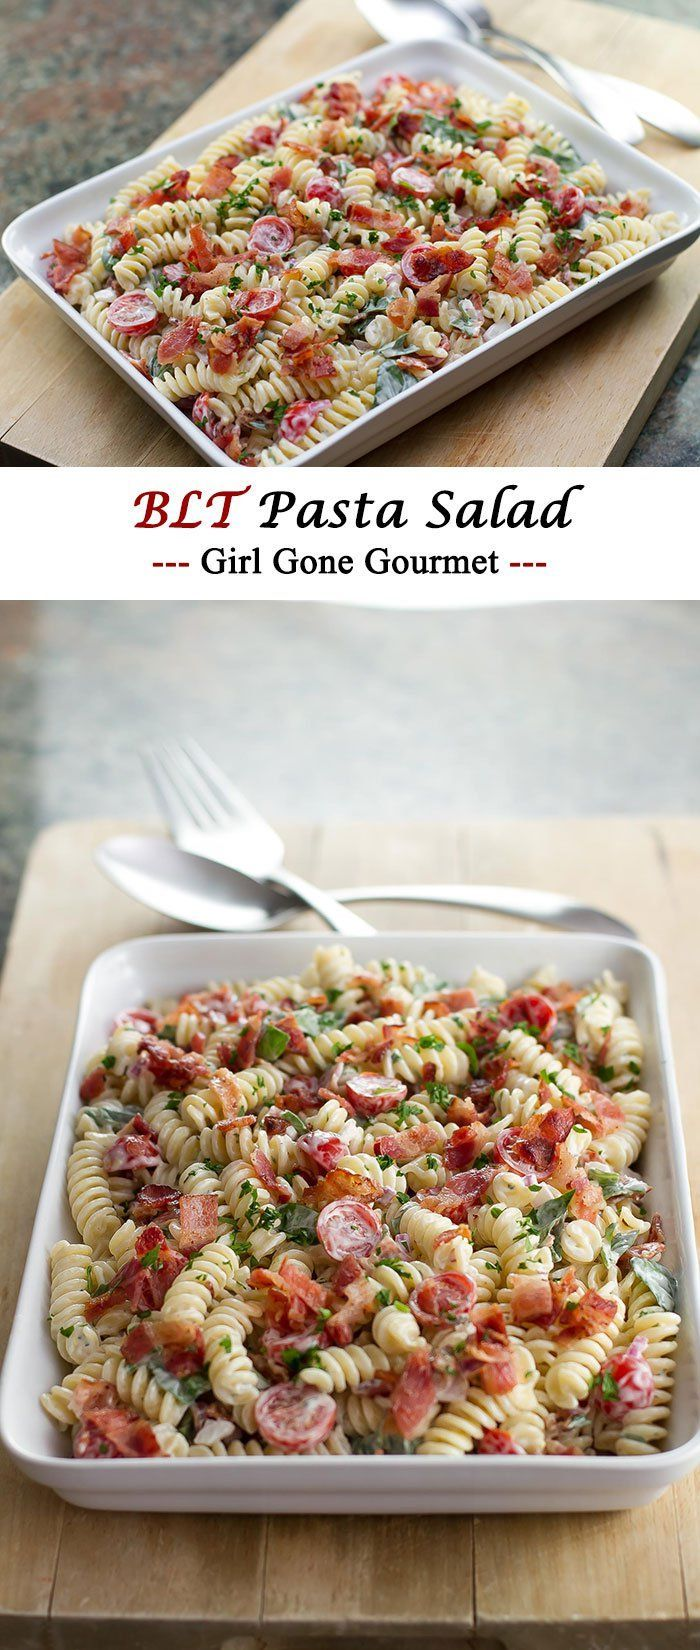 A fun twist on a traditional BLT - this pasta salad has a creamy mayo dressing, crispy bacon, and sweet cherry tomatoes | girlgonegourmet.com